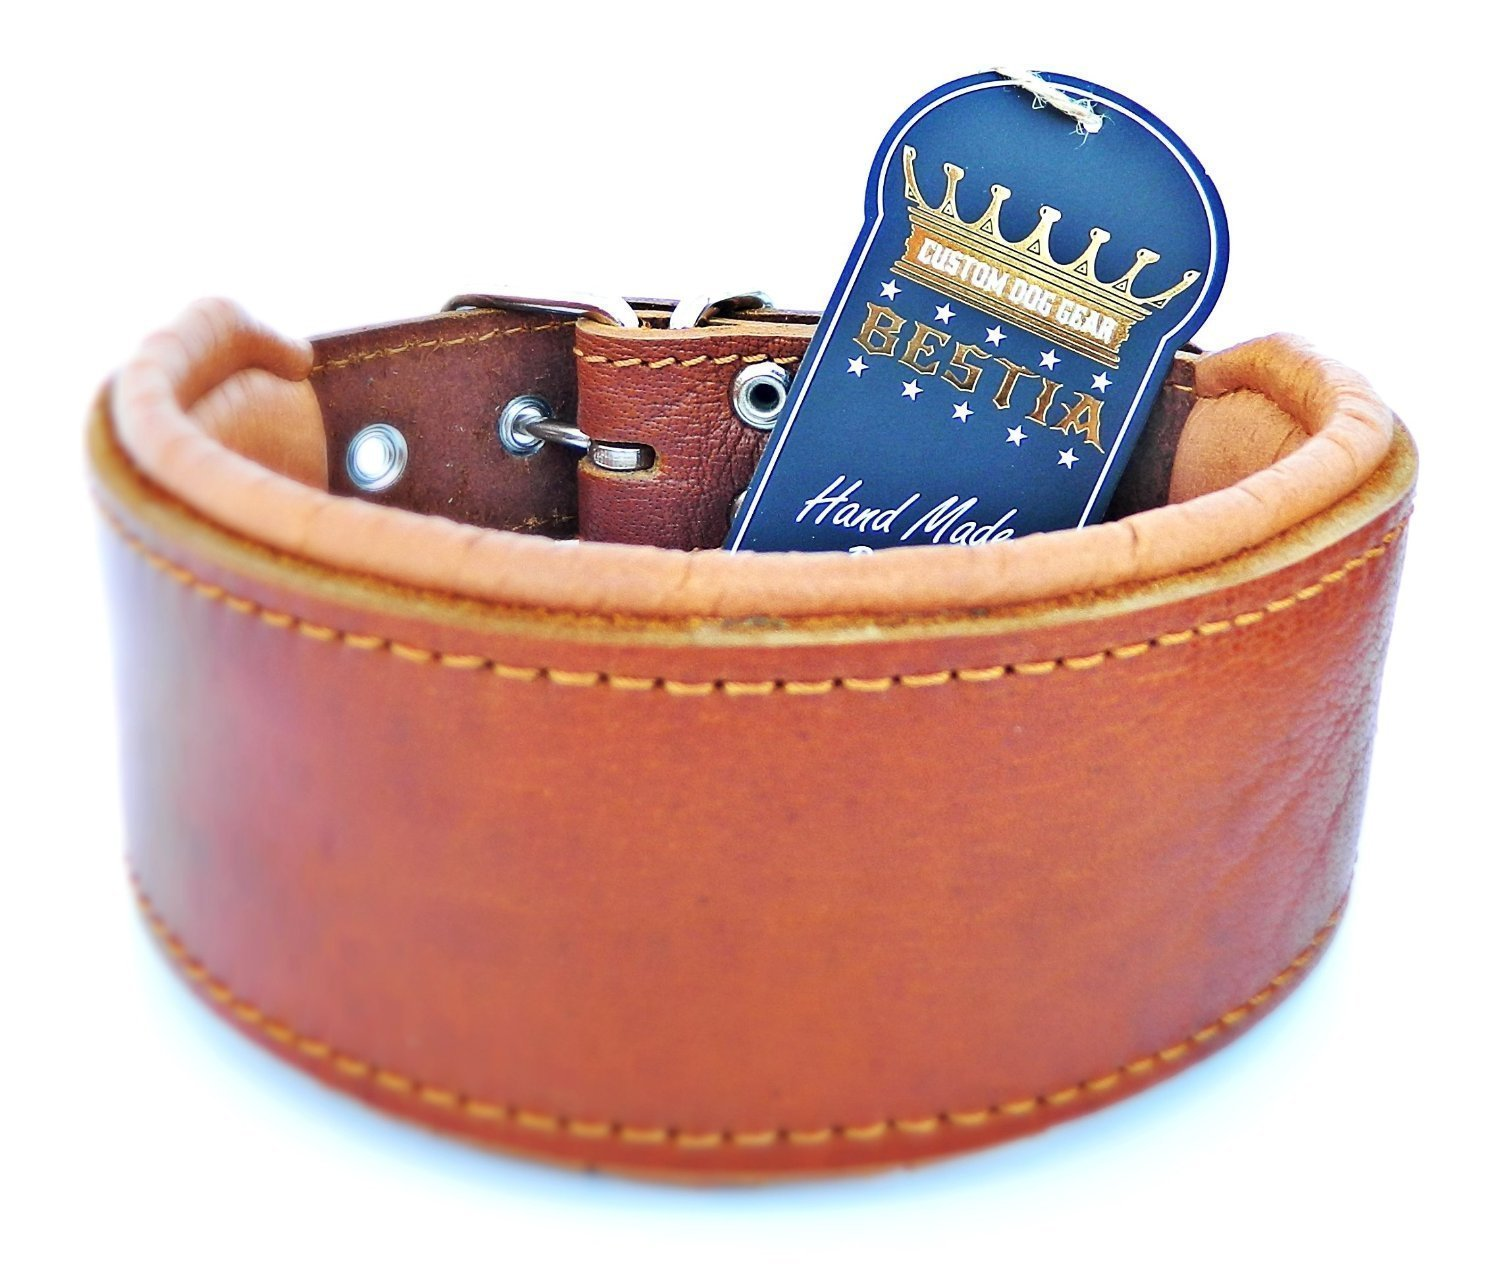 XL- fits a neck of 22.6- 25.6 inch Bestia genuine leather dog collar, Soft padded, Large breeds, cane corso, redtweiler, Boxer, Bullmastiff, Dogo, Bully, Quality dog collar, 100% leather, all brown, M- XXL size, 2.5 inch wide. Soft padded. Europe`s finest